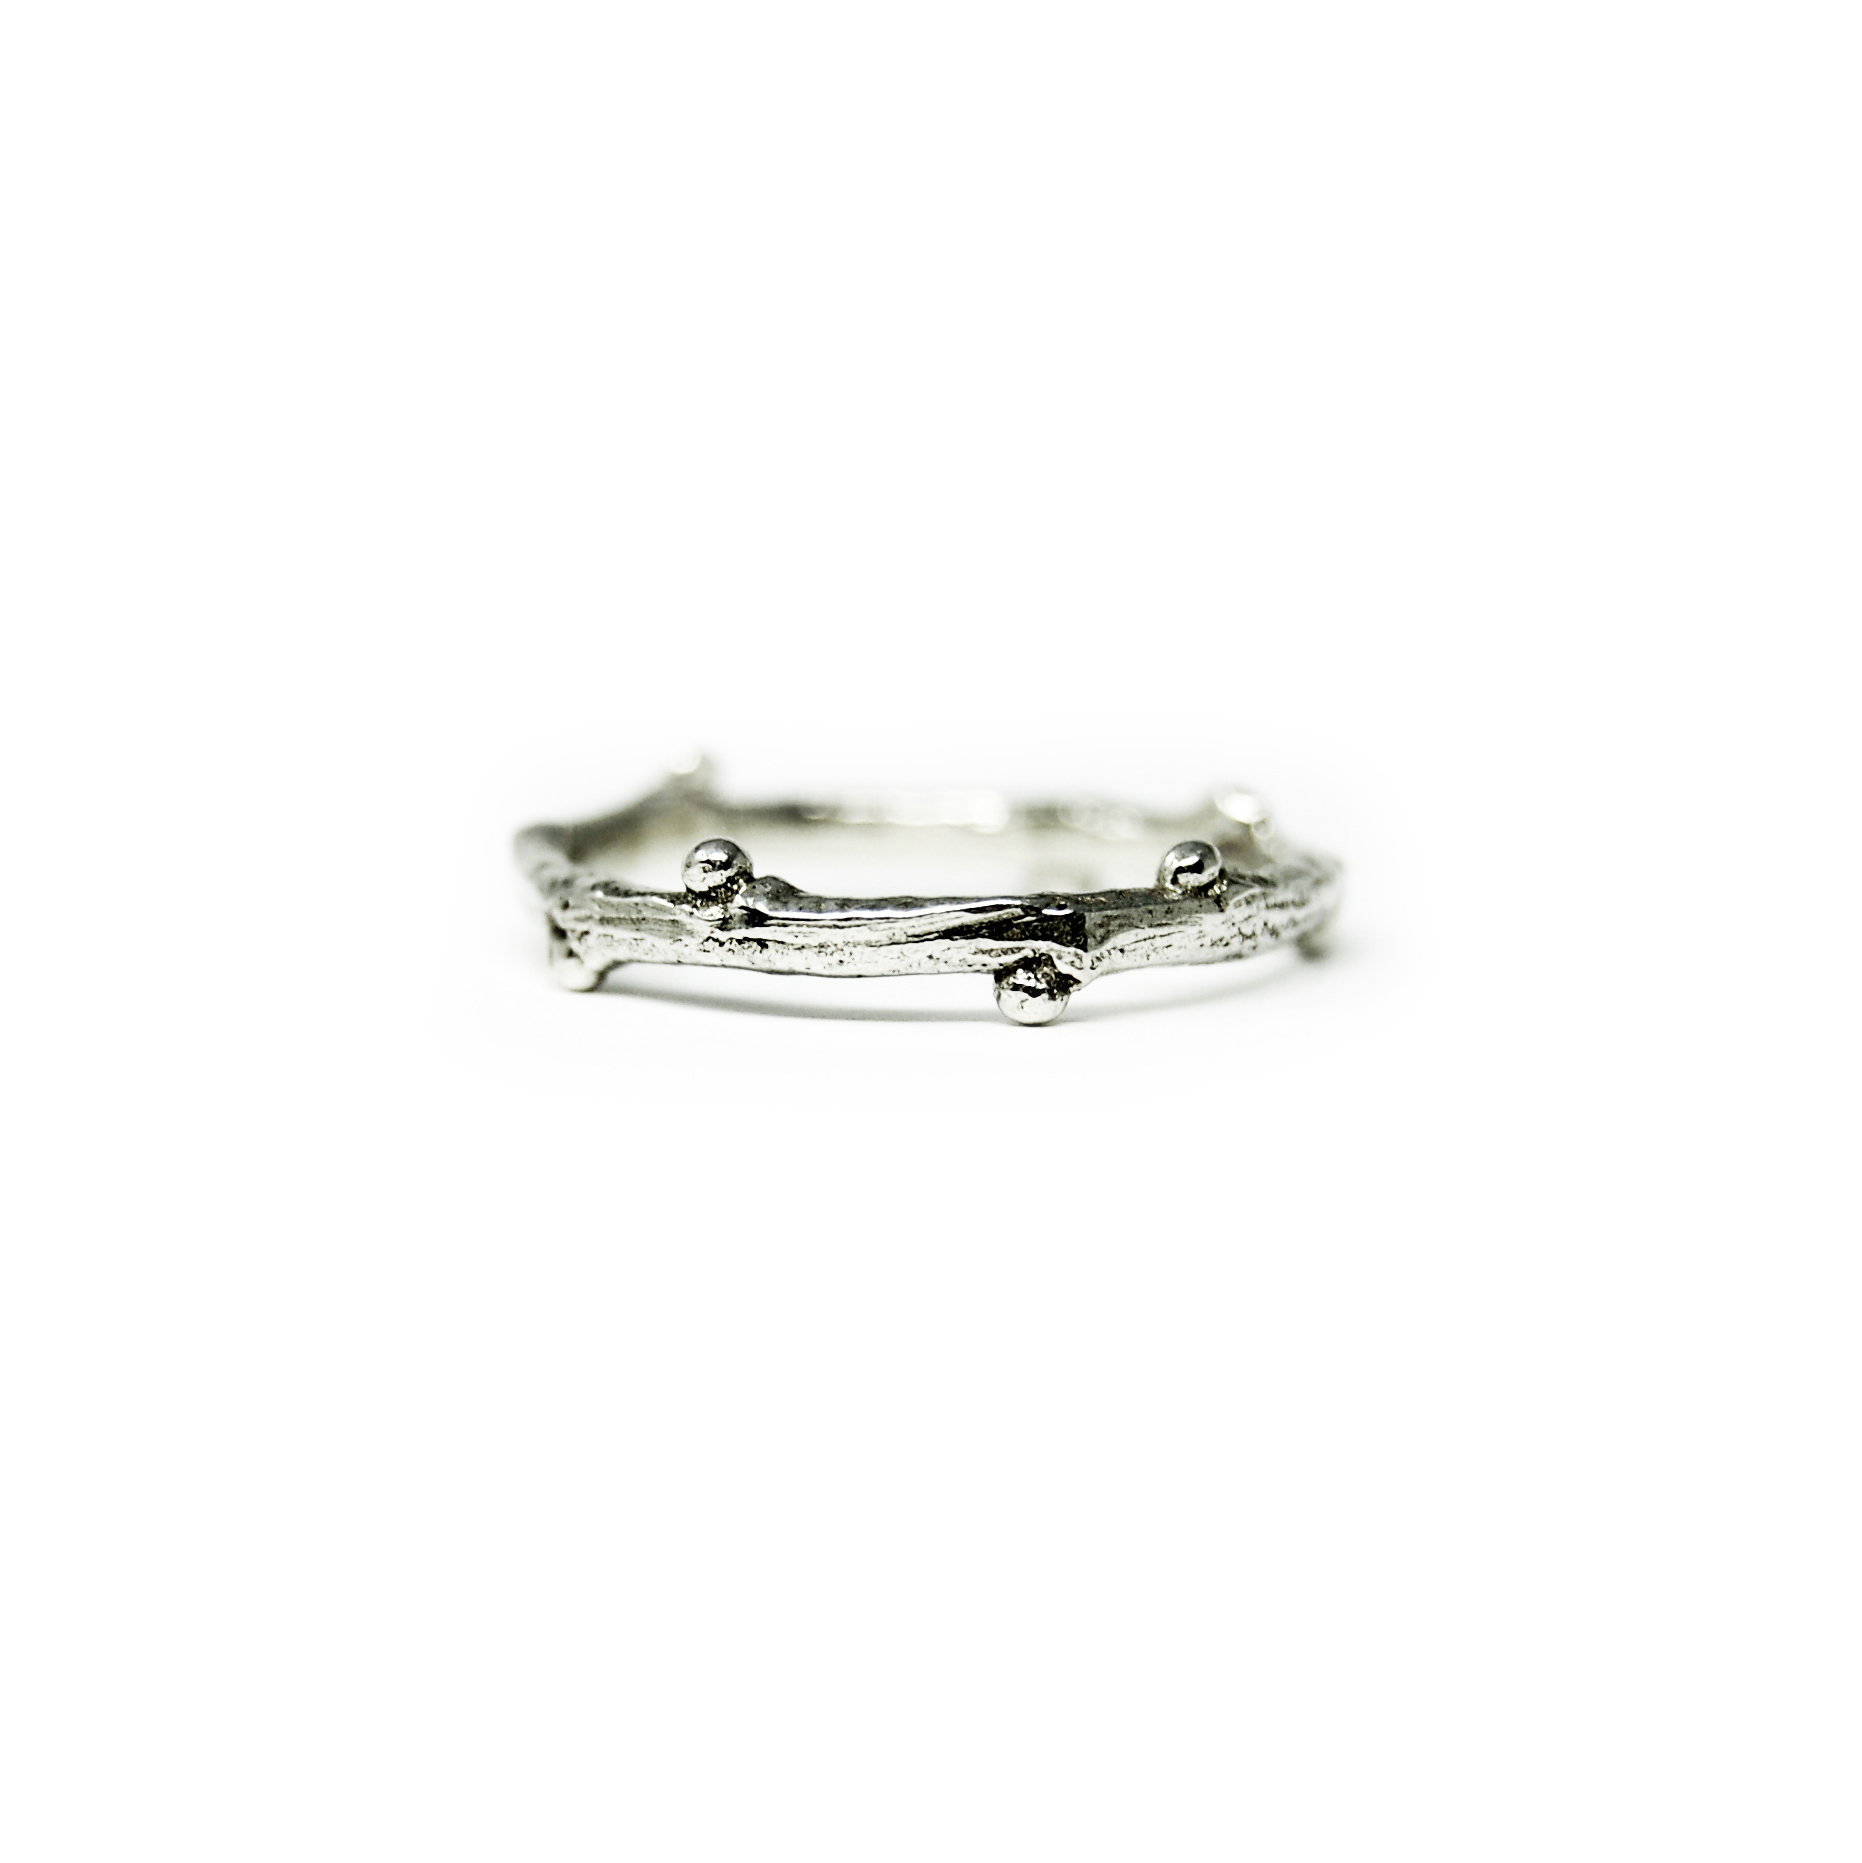 Twig Ring in Sterling Silver $48.00